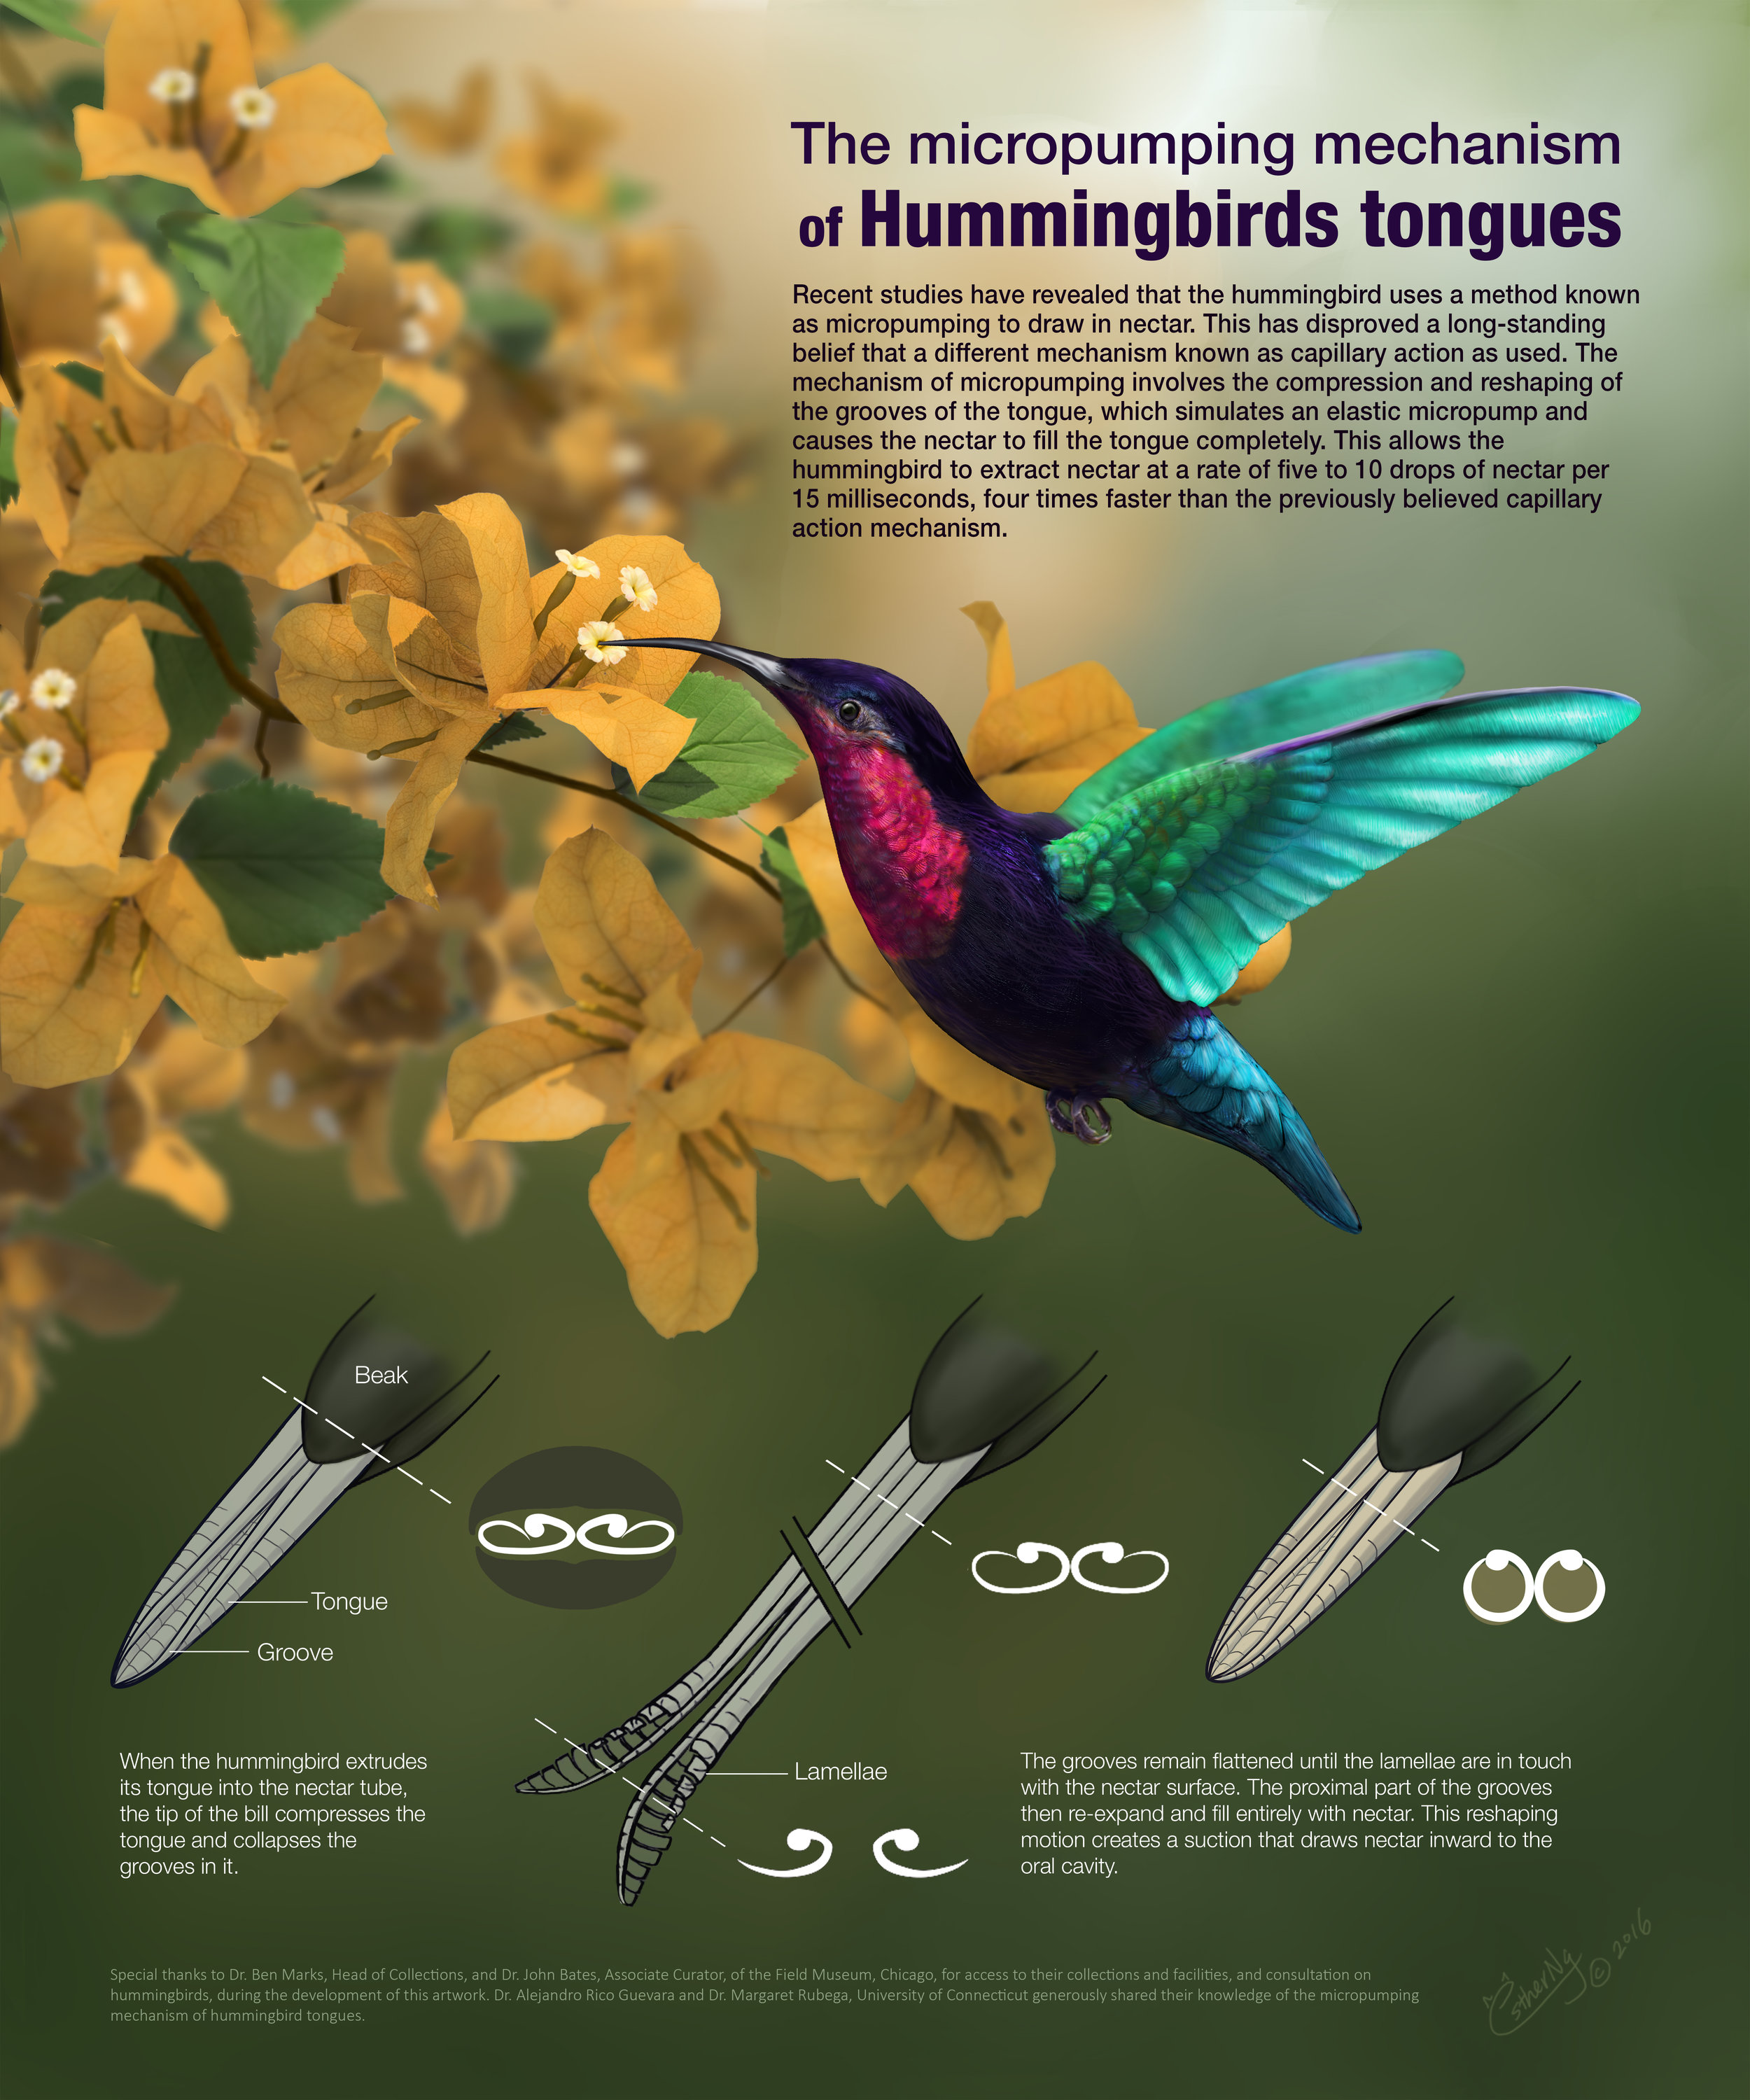 Esther Ng - created this beautiful poster on how the hummingbird's tongue works.